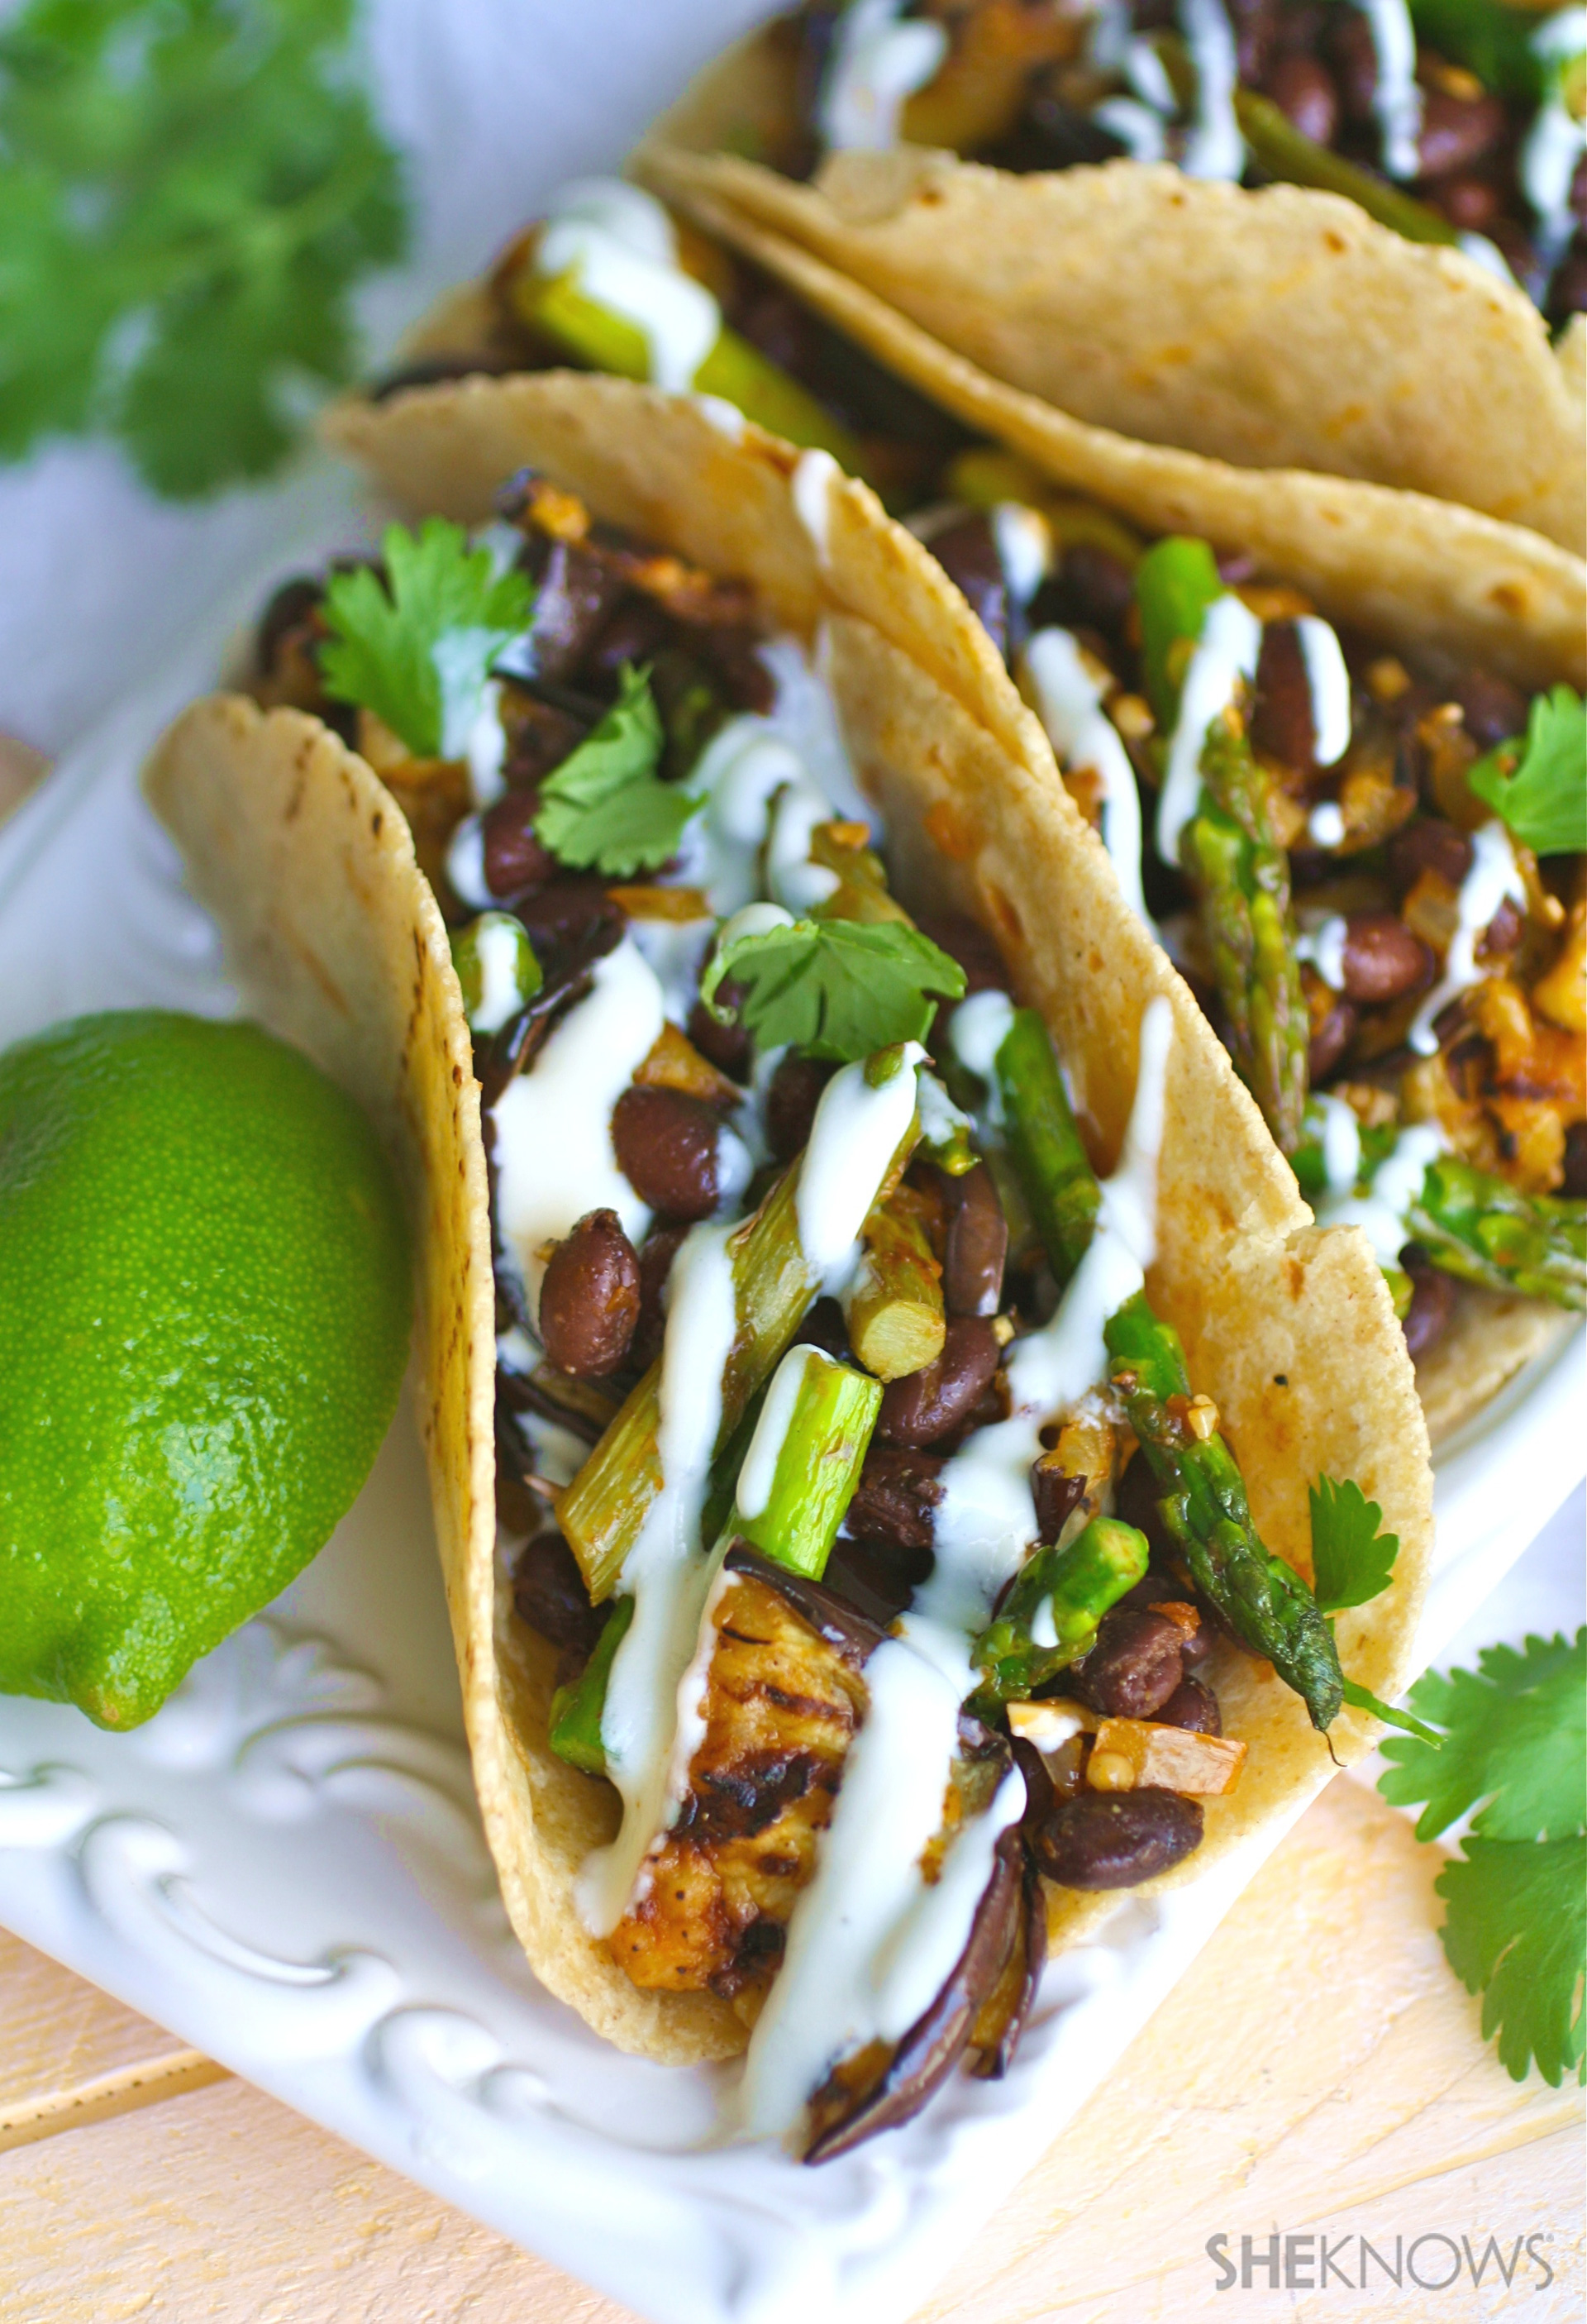 ... tons of flavor to vegan tacos with eggplant, asparagus and black beans